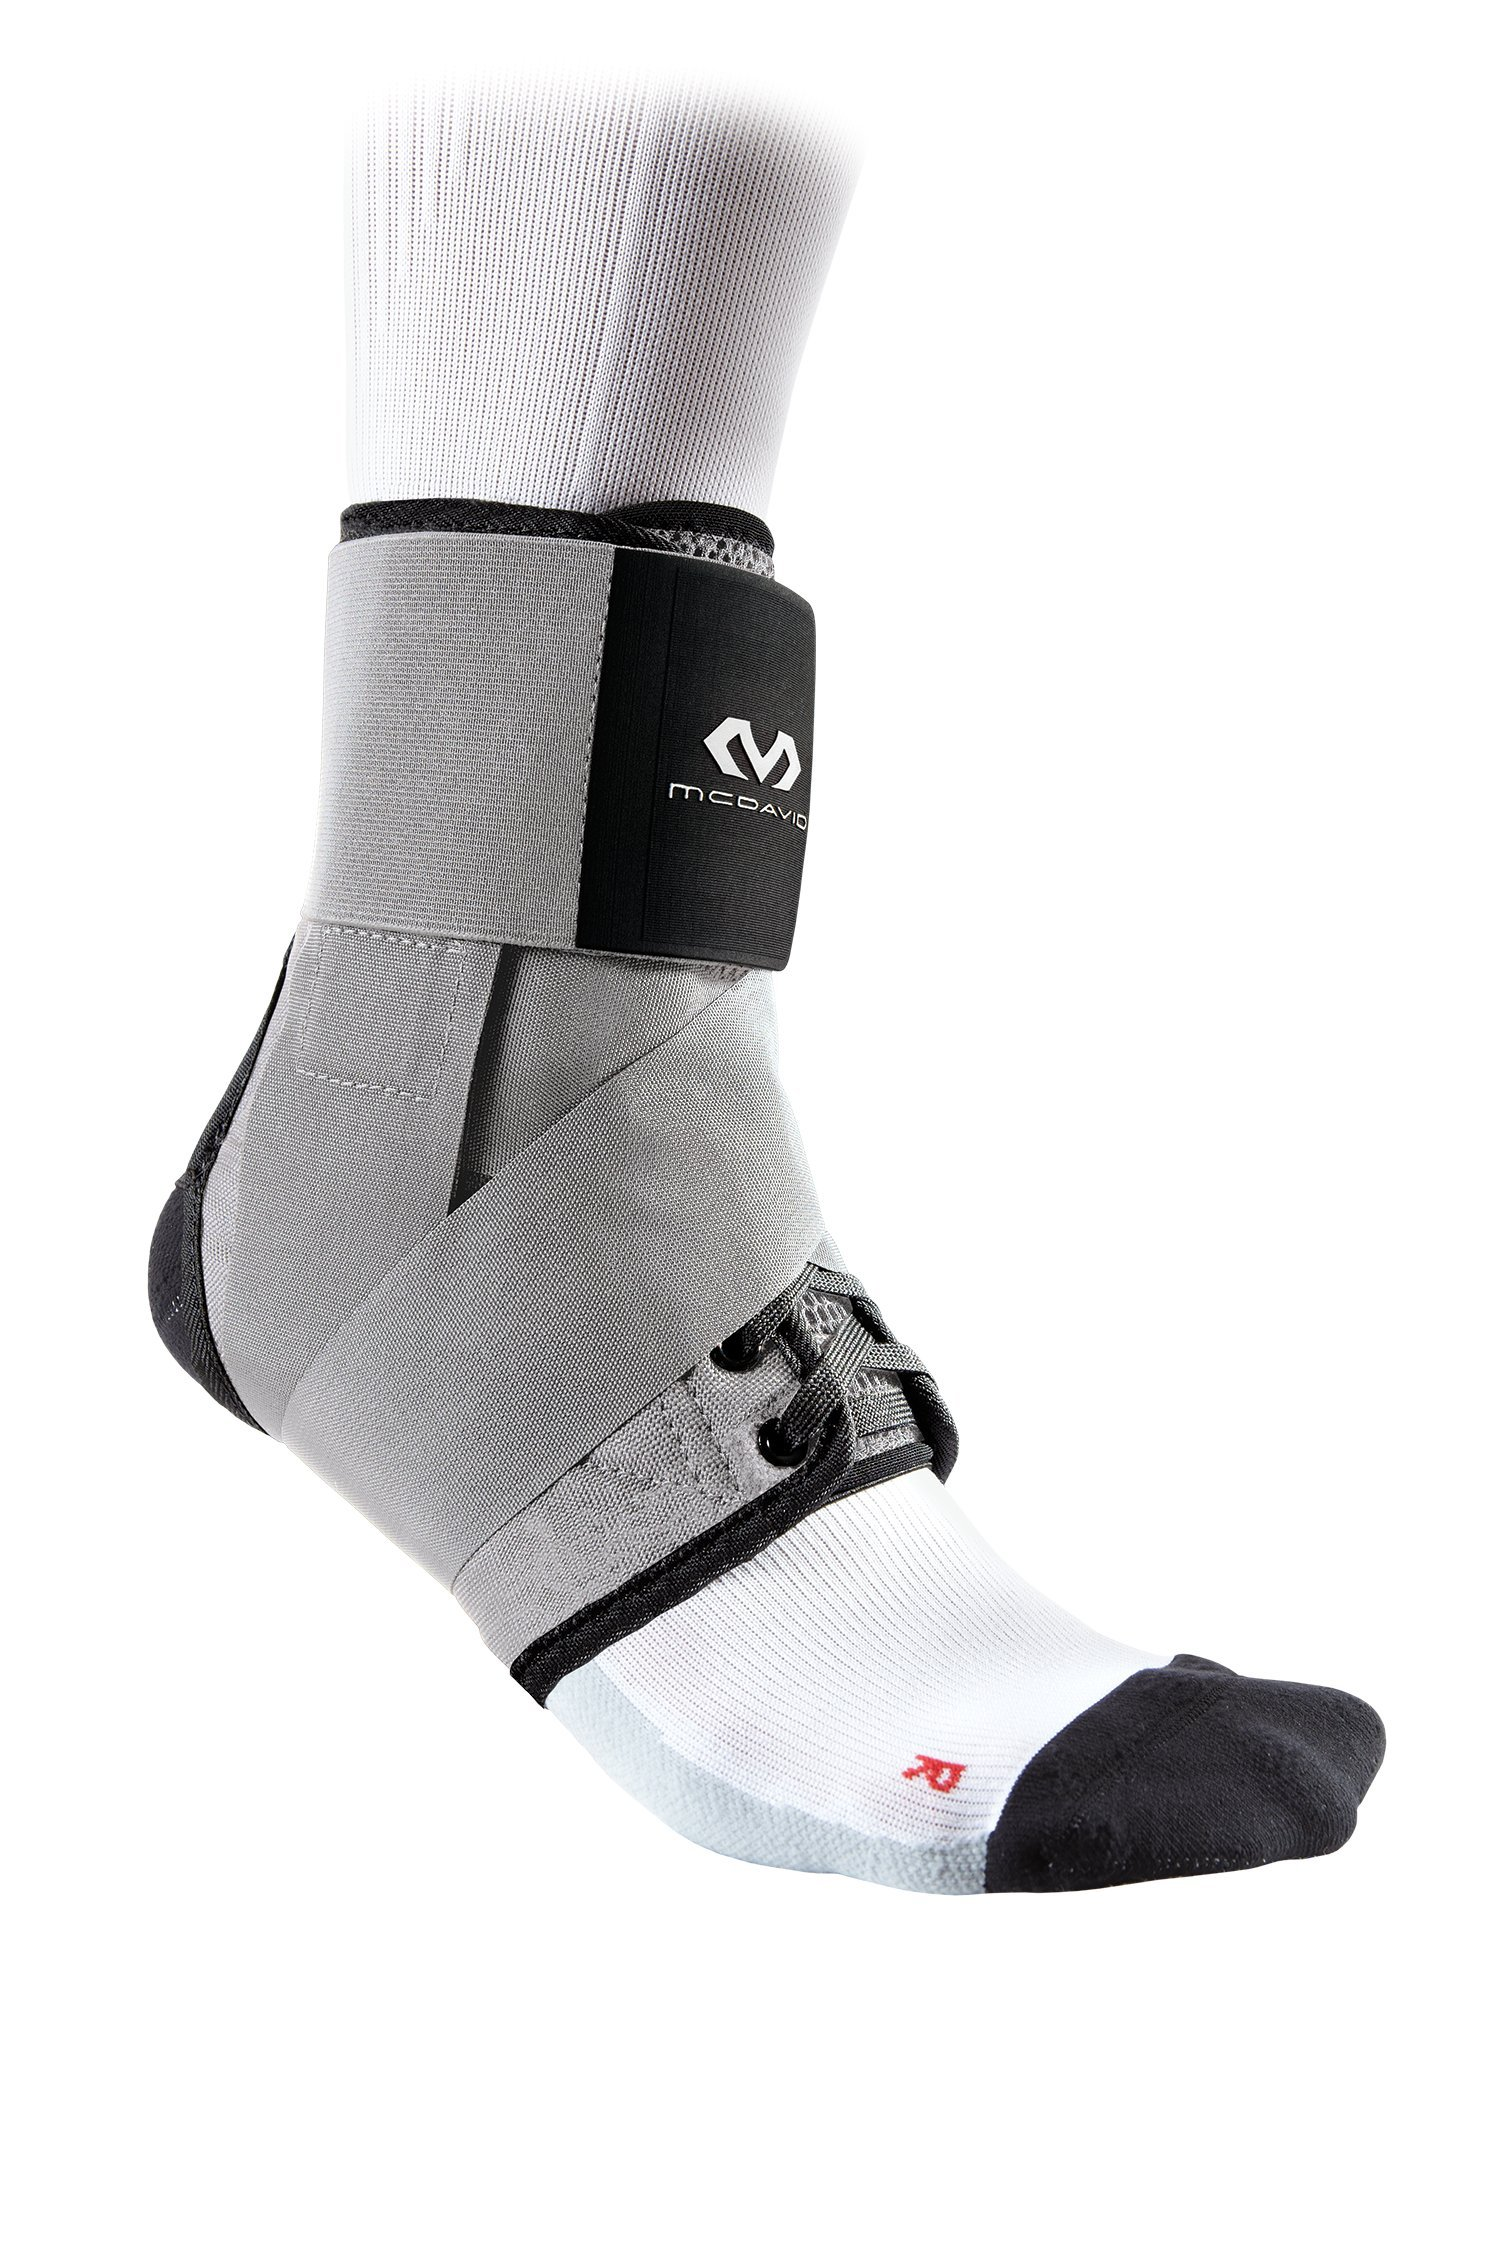 McDavid Level 3 Ankle Brace with Straps, Gray, X-Small by McDavid (Image #1)